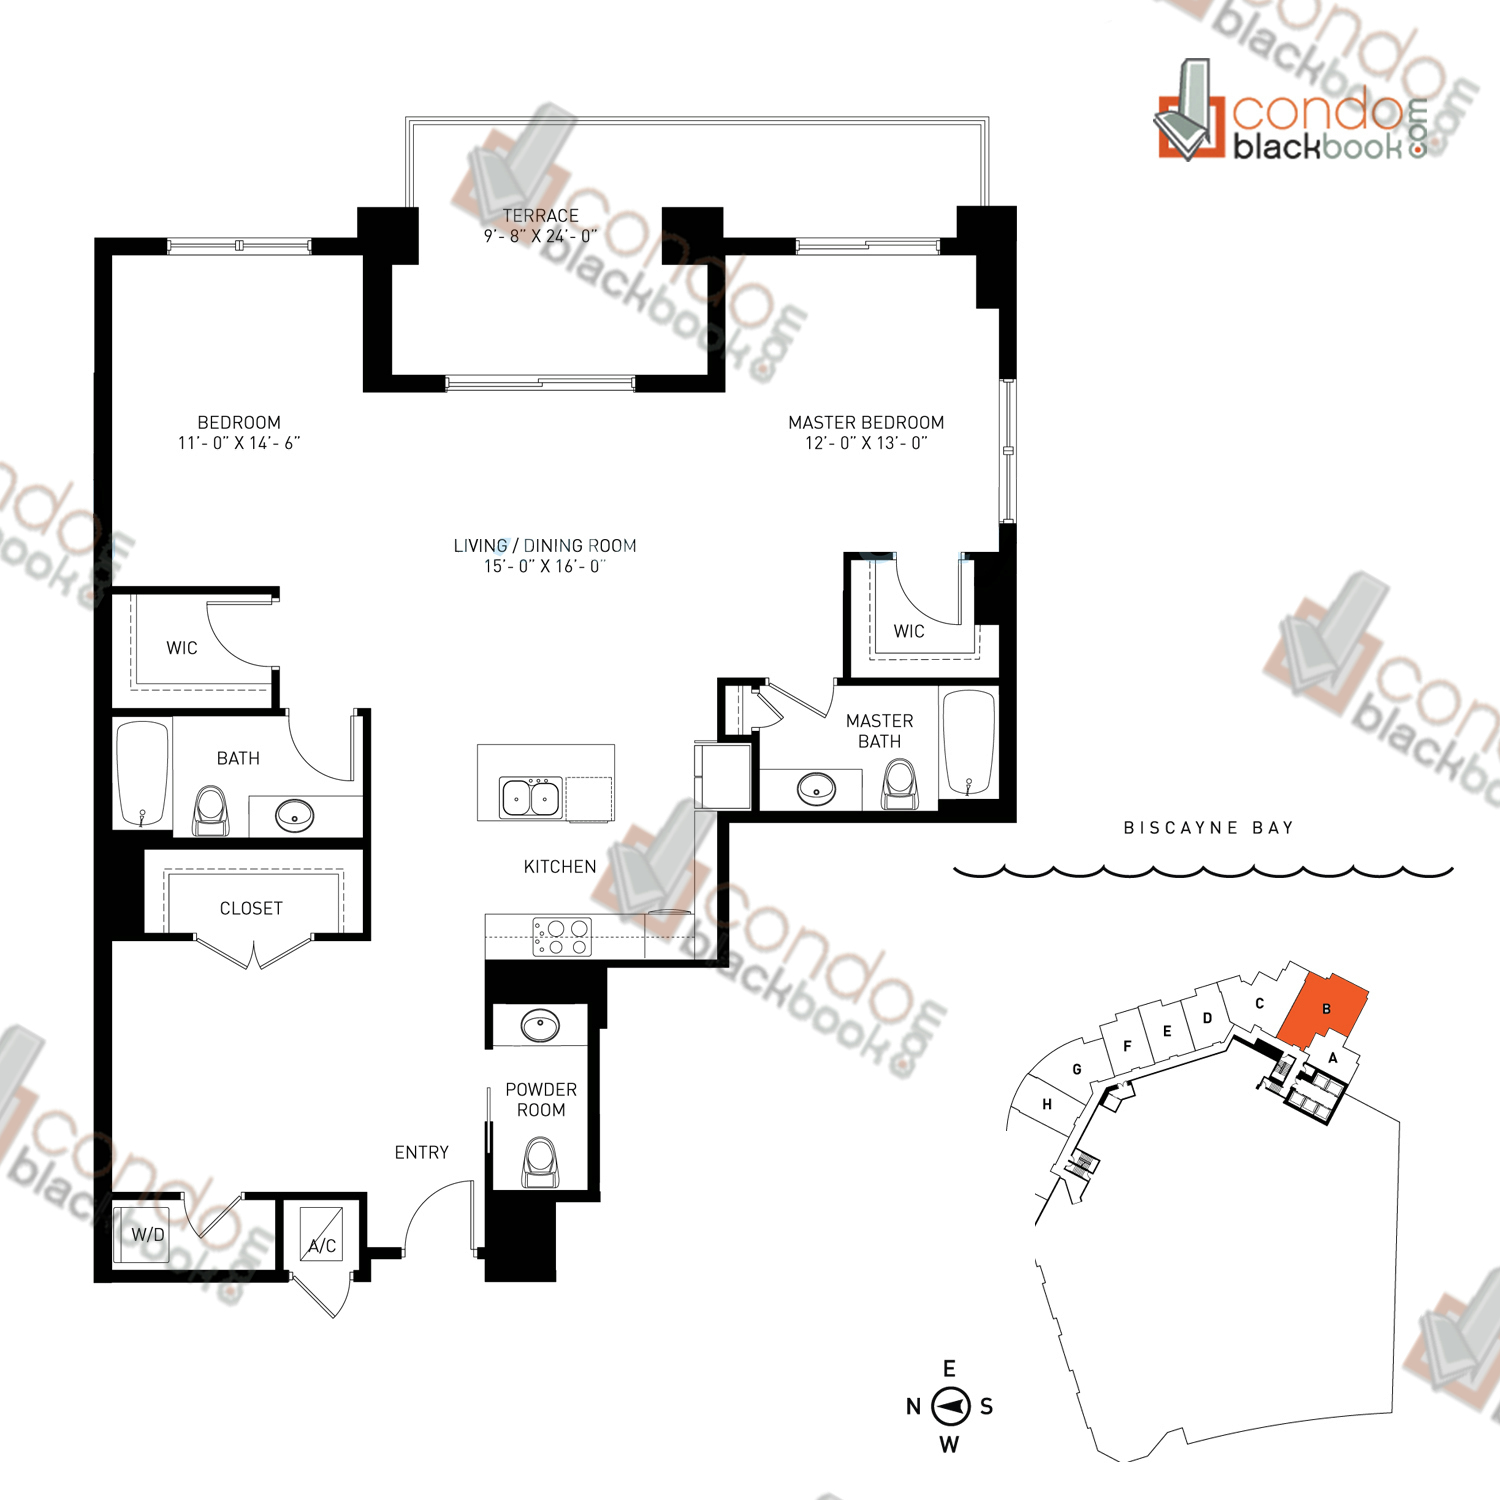 Floor plan for Quantum on the Bay Edgewater Miami, model Loft_B, line South Tower - 02, 2/2.5+Den bedrooms, 1,377 sq ft